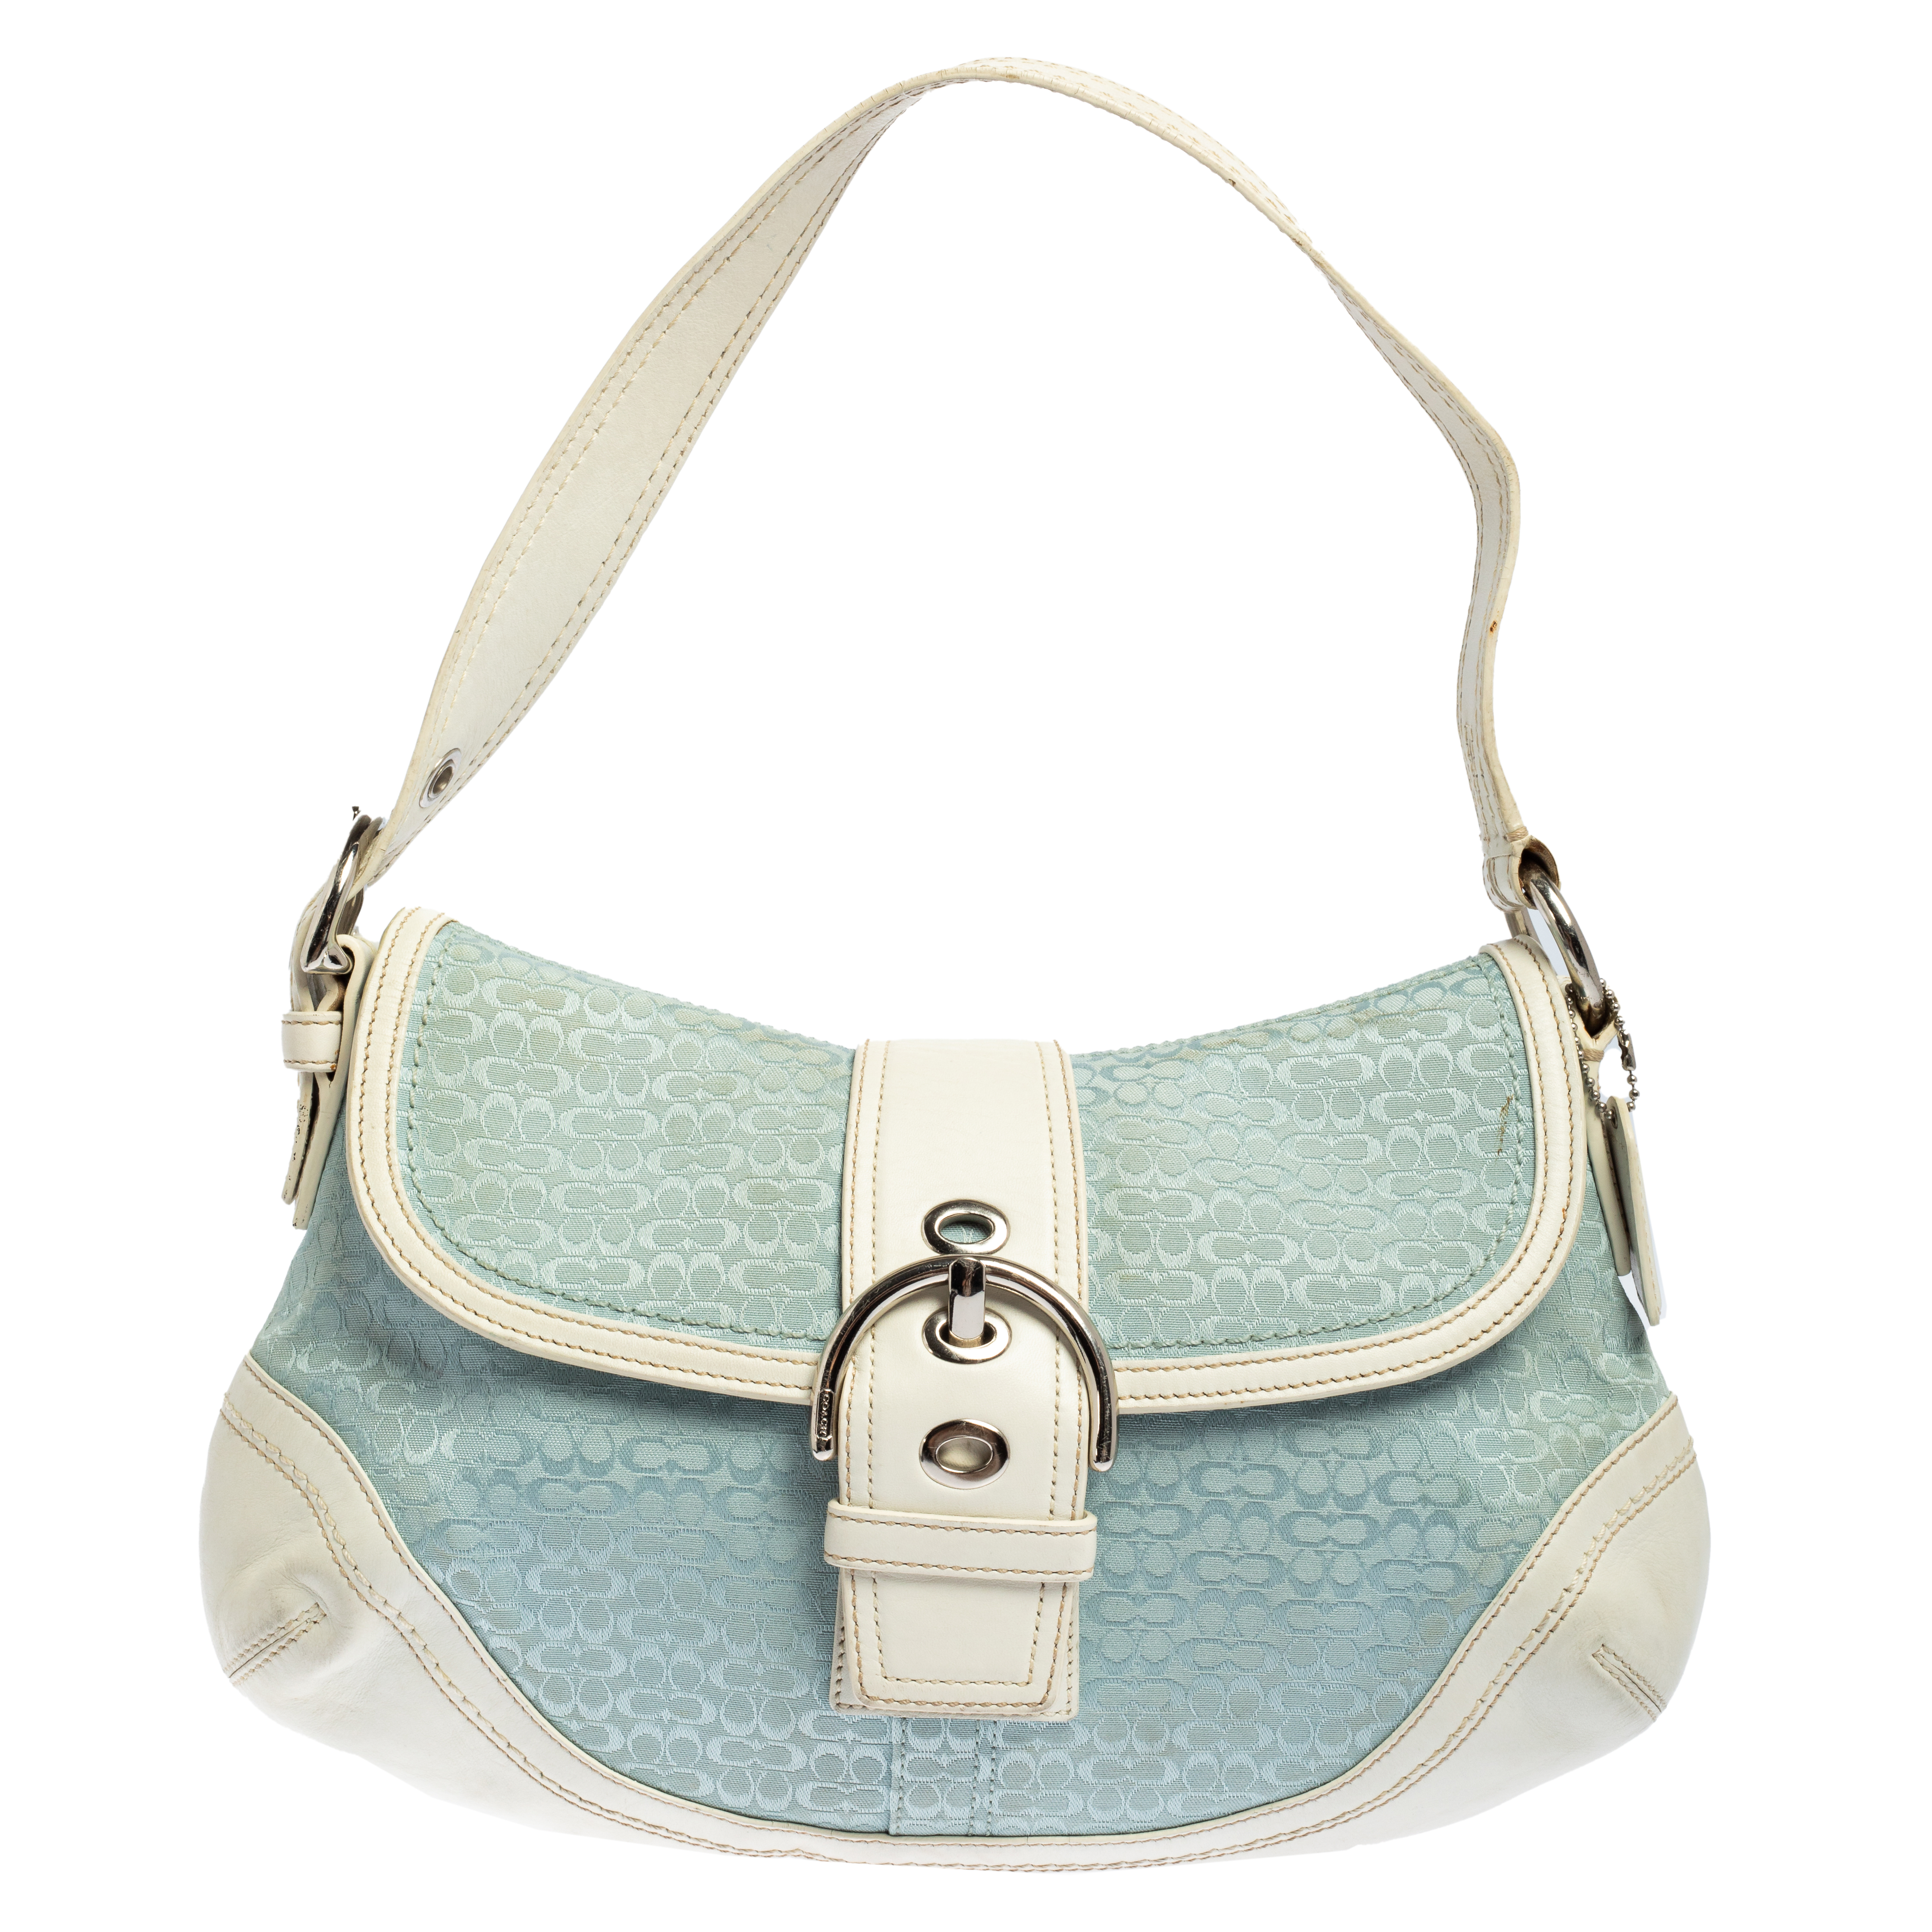 Pre-owned Coach White/light Blue Signature Canvas And Leather Soho Baguette Bag